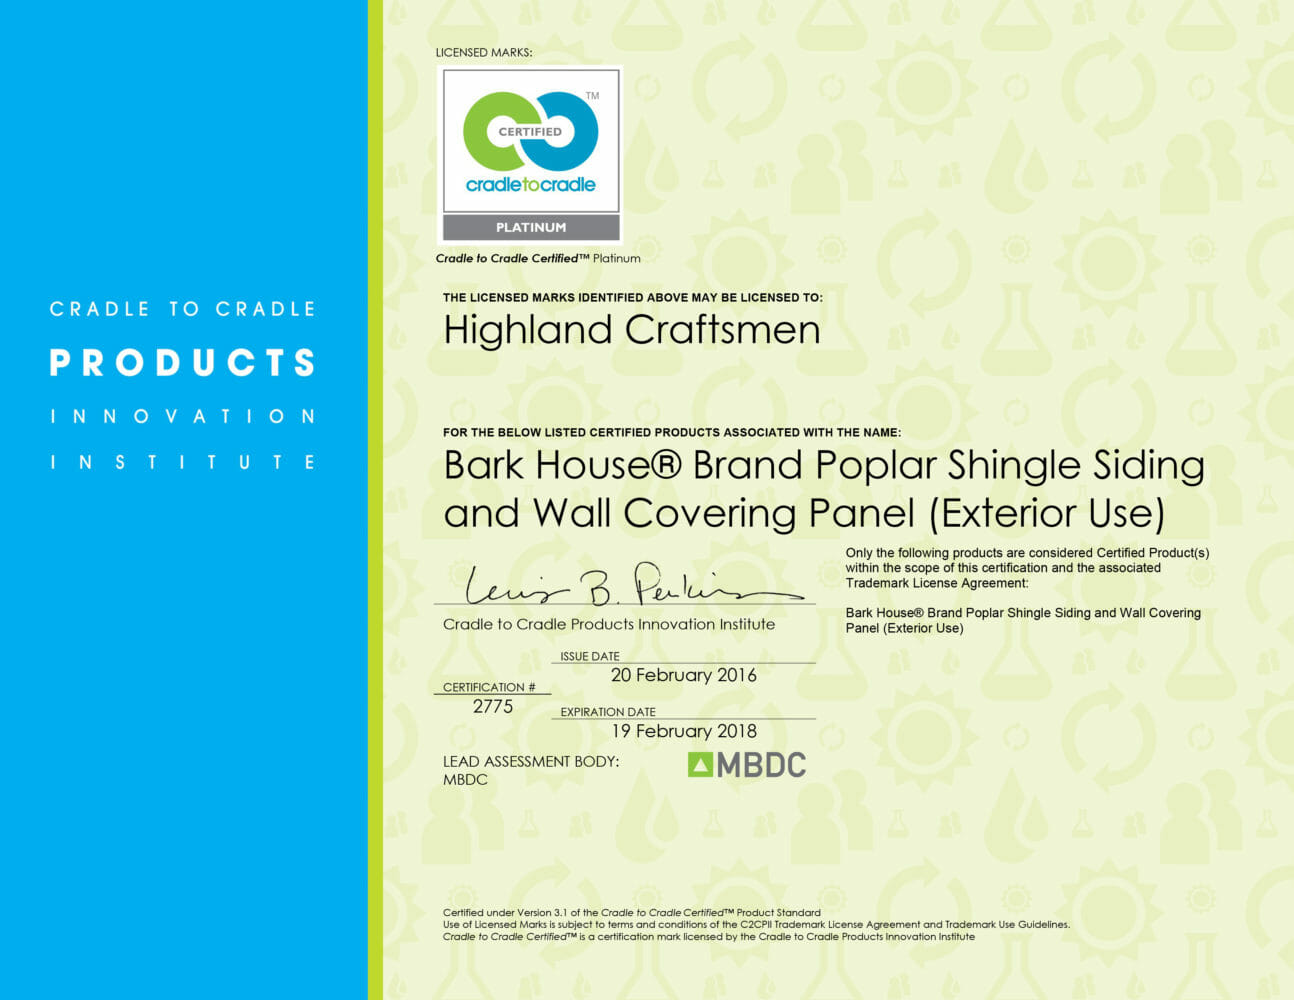 The Bark House at Highland Craftsmen Inc earns the first ever Cradle to Cradle Certified Platinum